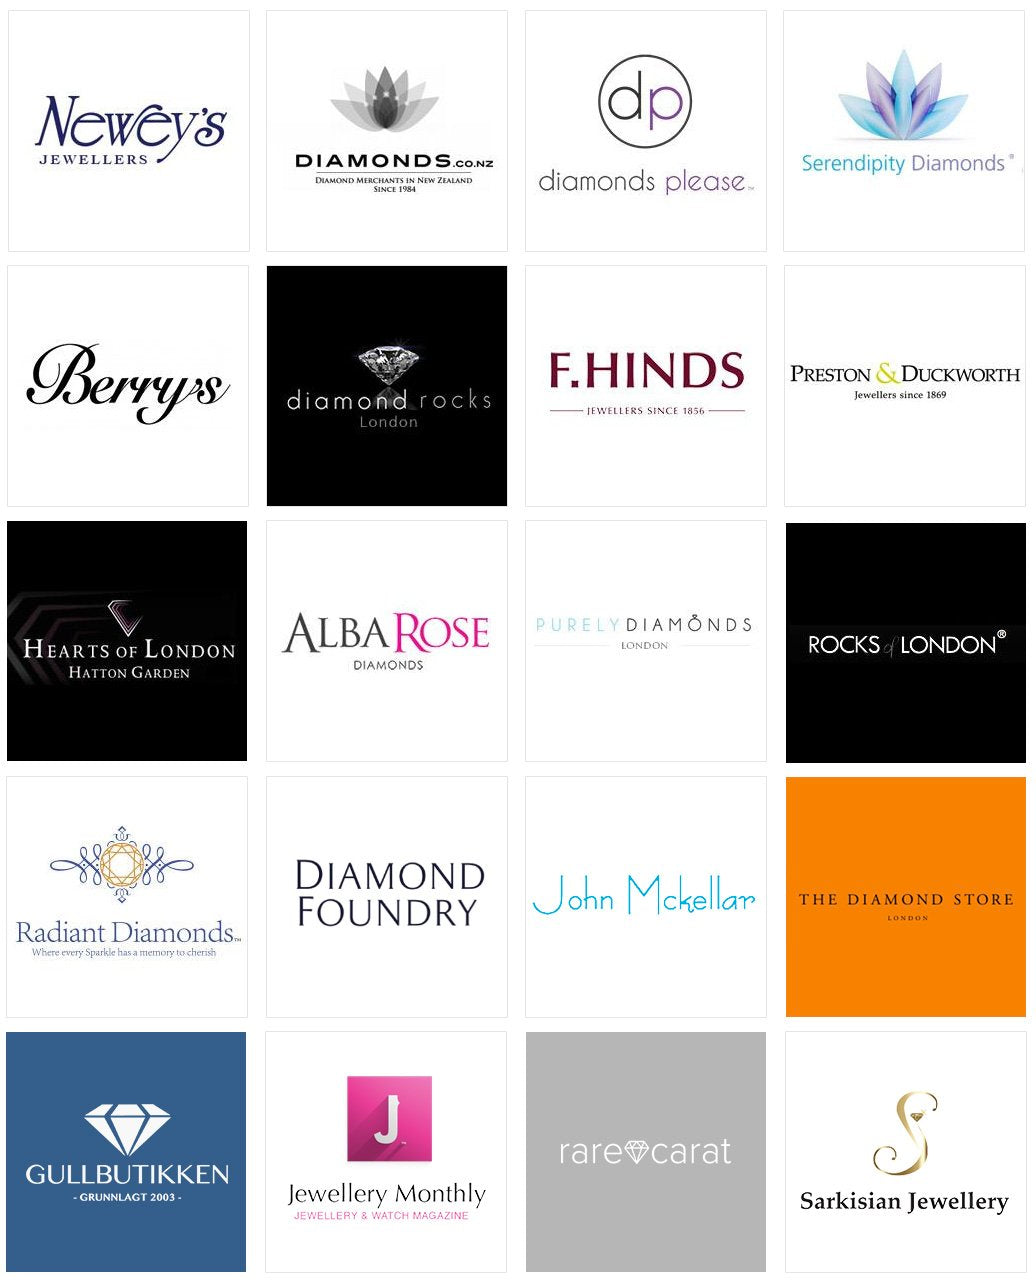 Diamond Showcase app clients